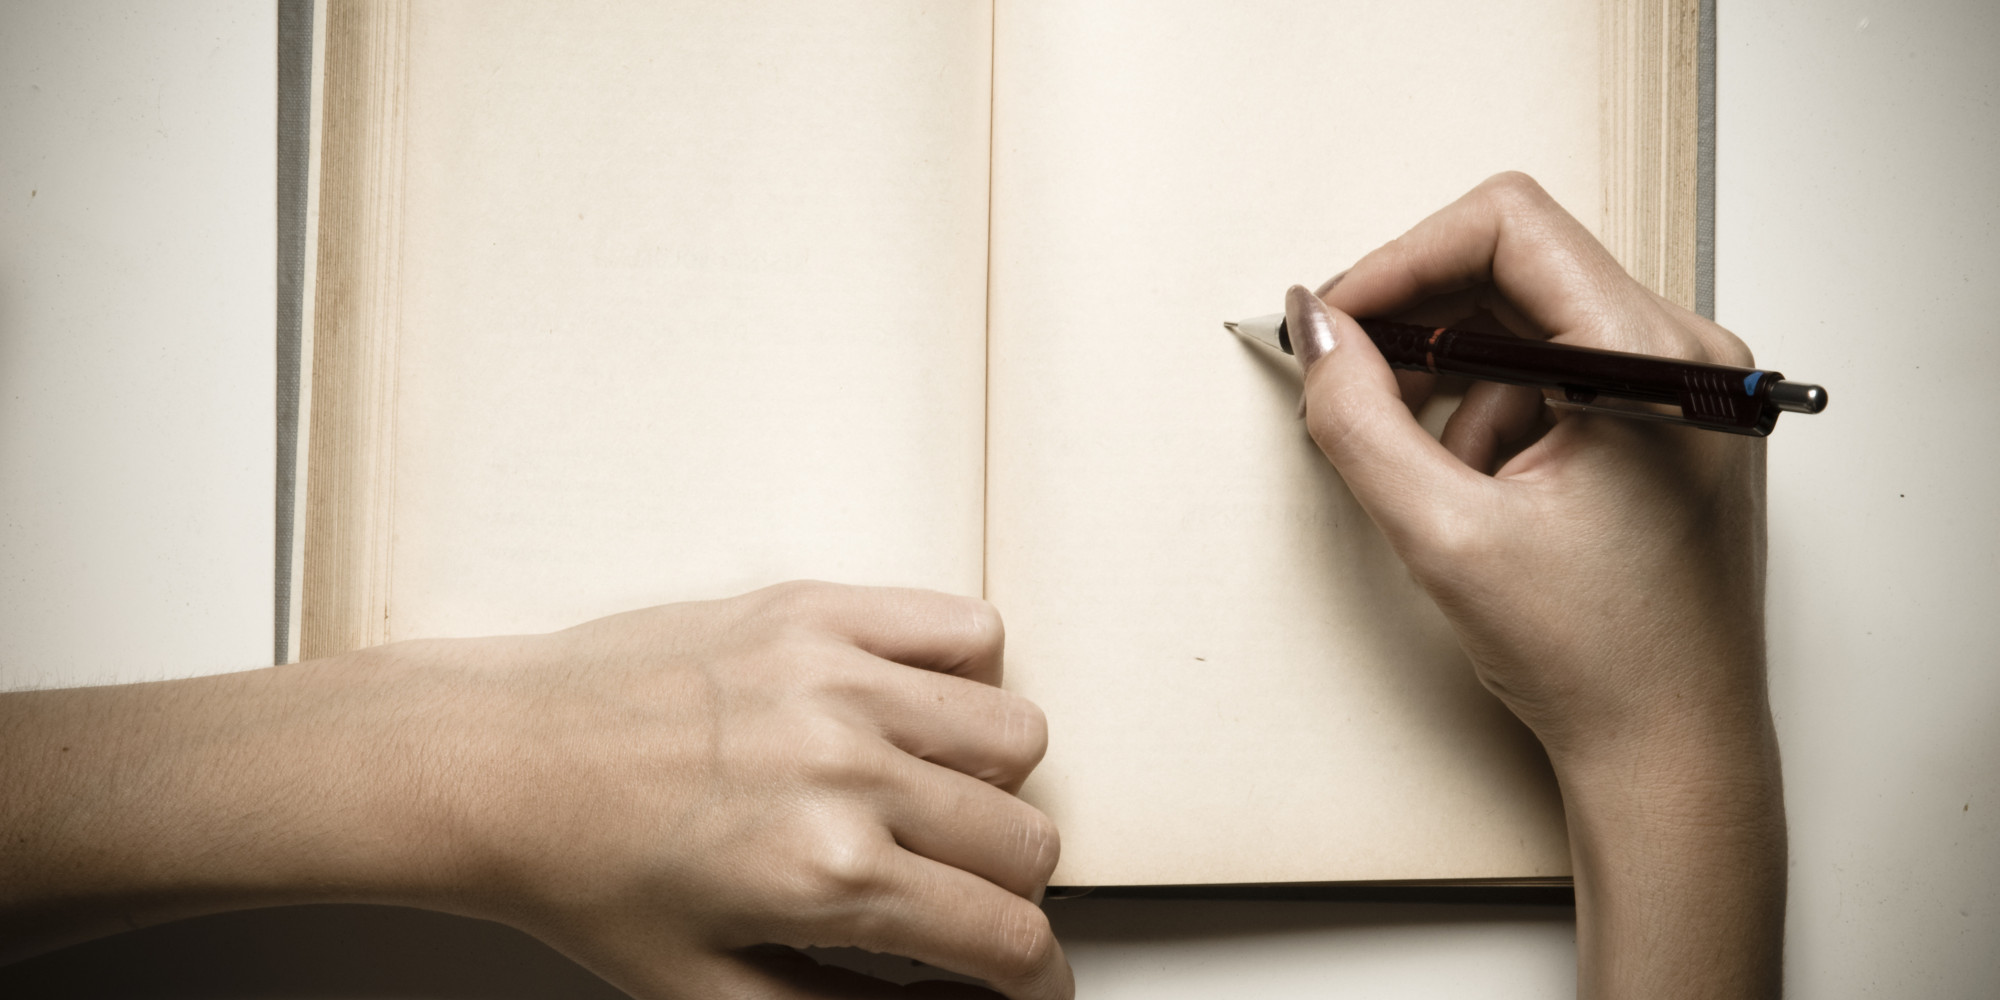 So You Want to Write a Book? Here's 10 Things You Need to Know to Get Published